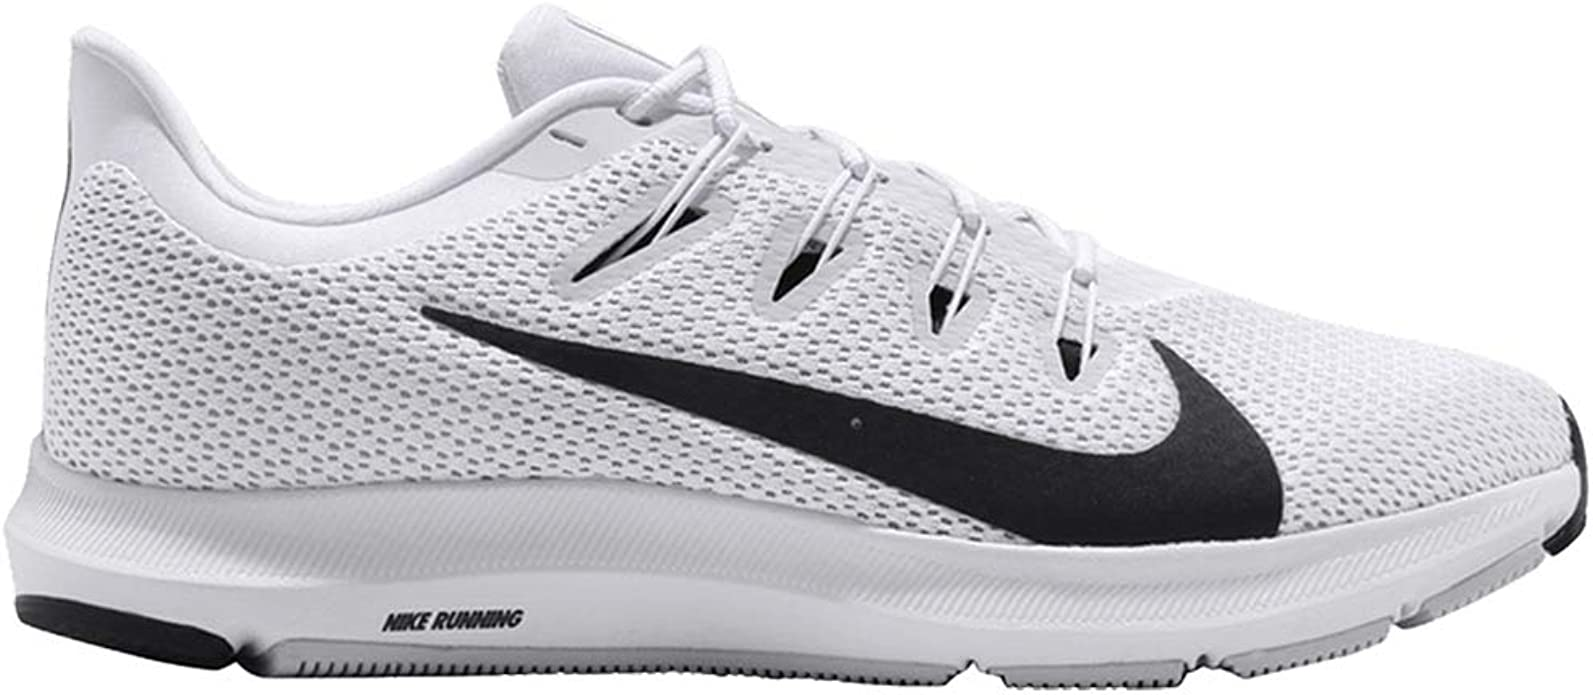 Nike Quest 2 Mens Casual Running Shoes